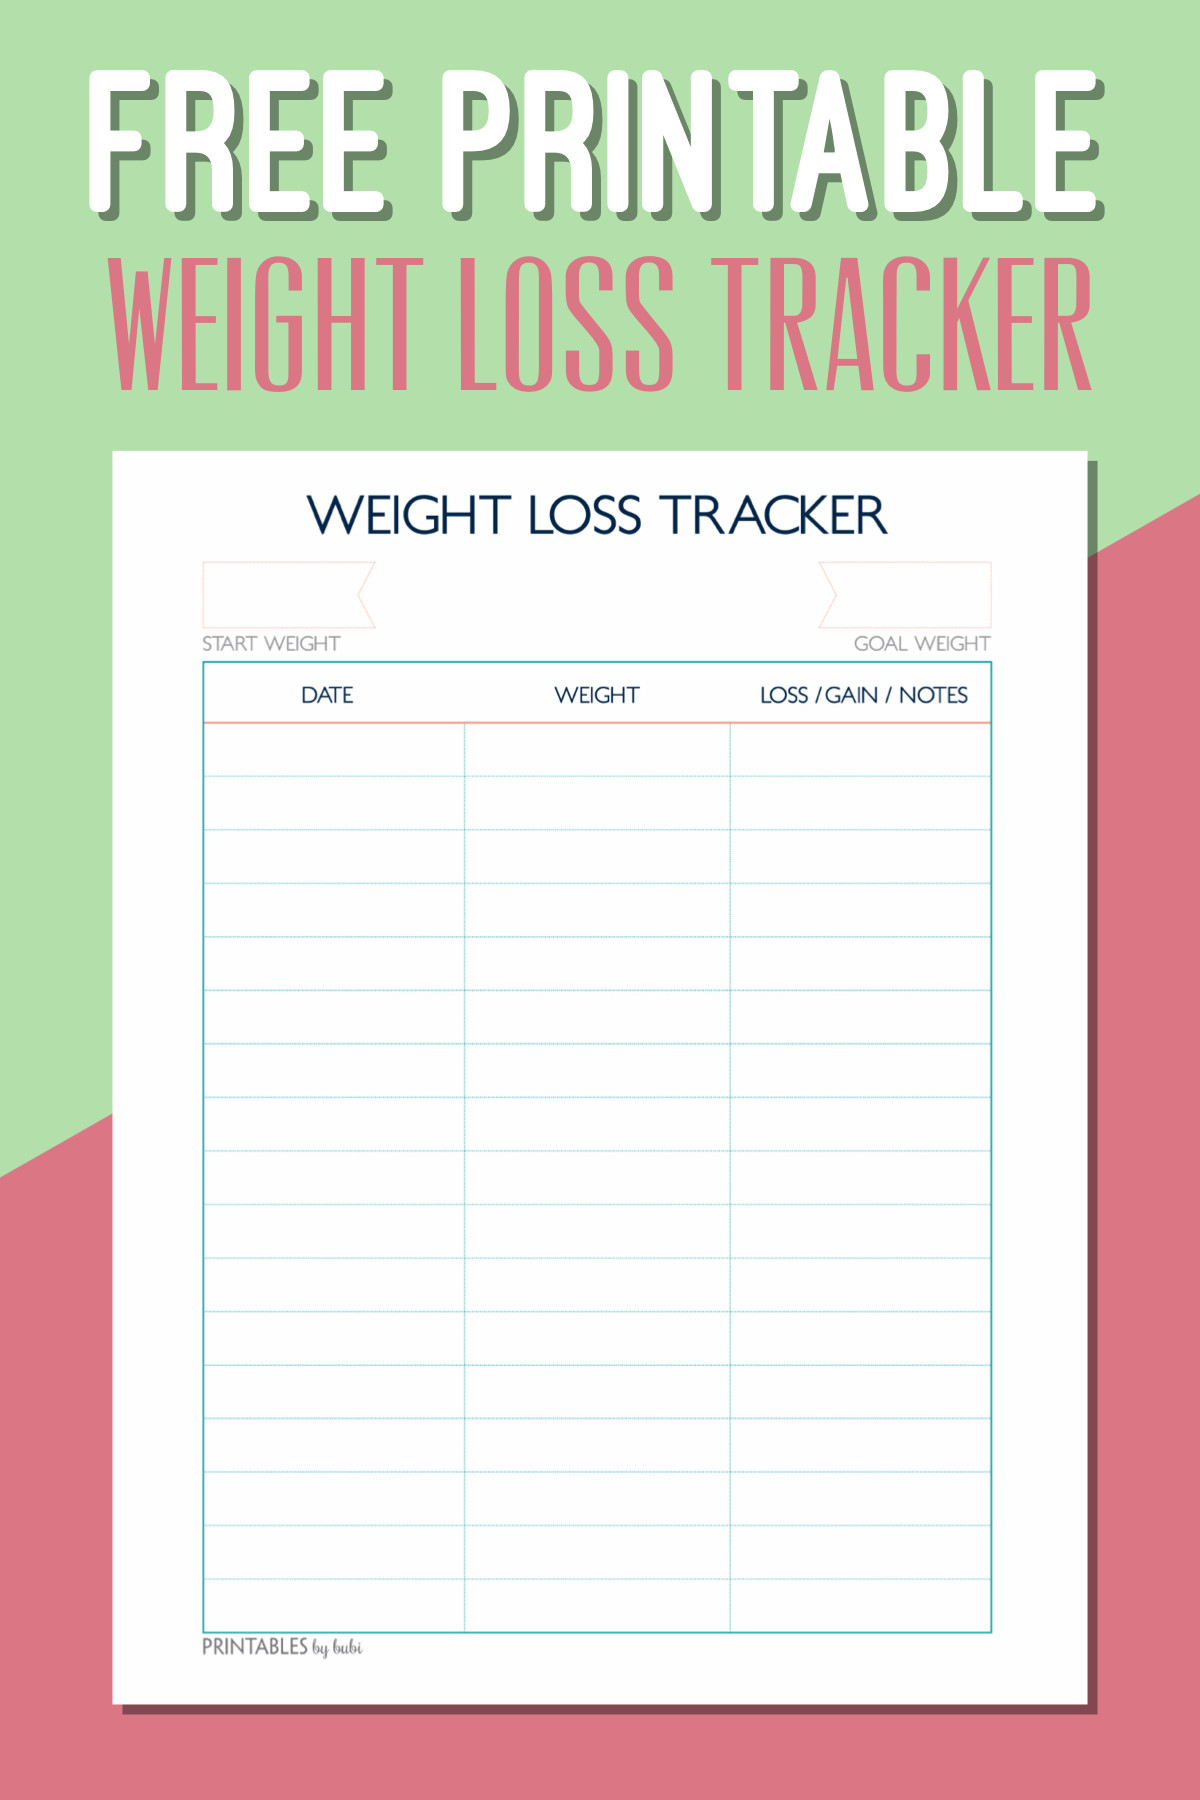 Weight Loss Charts Printable Free Printable Weight Loss Tracker – Instant Download Pdf